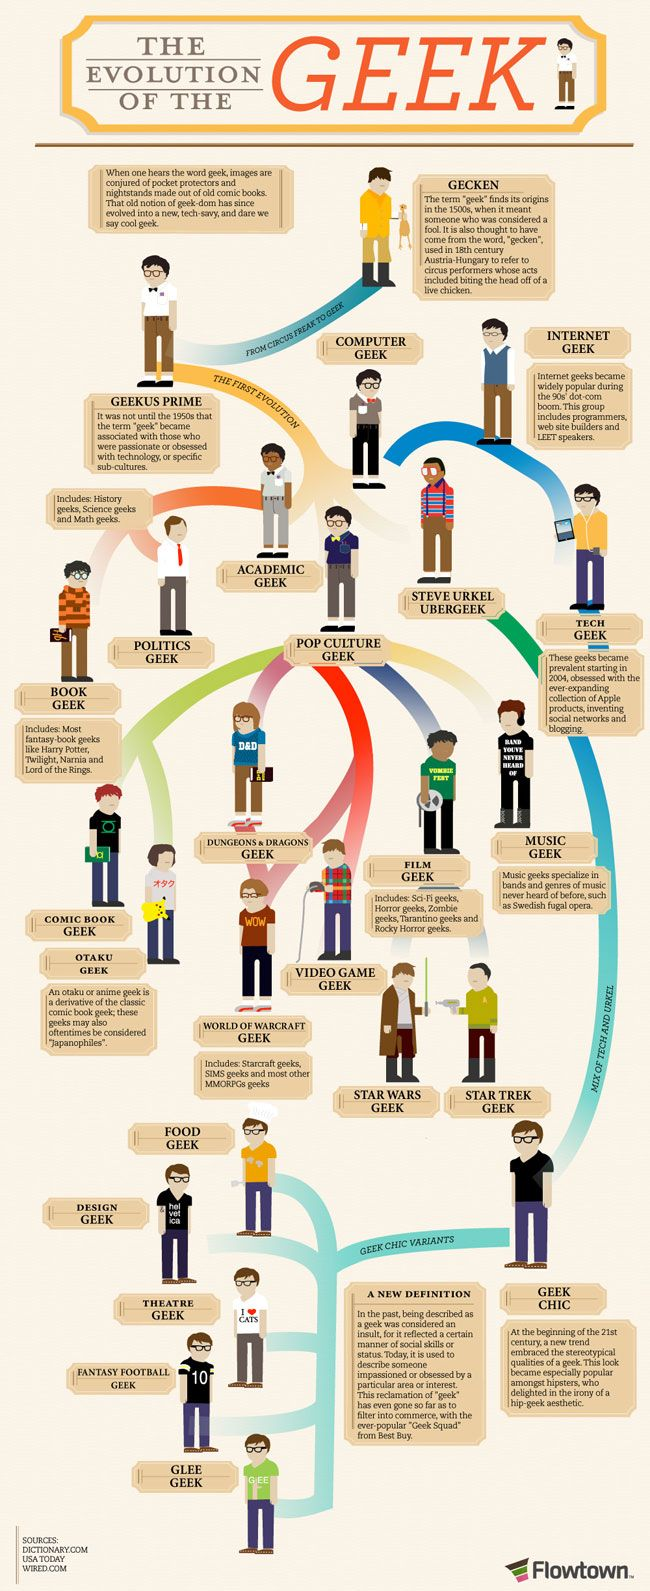 The Evolution of the Geek.  I'm a Pop Culture Geek (but I'm offended that under Book Geek Twilight is lumped w/ HP, Narnia, & LotR)